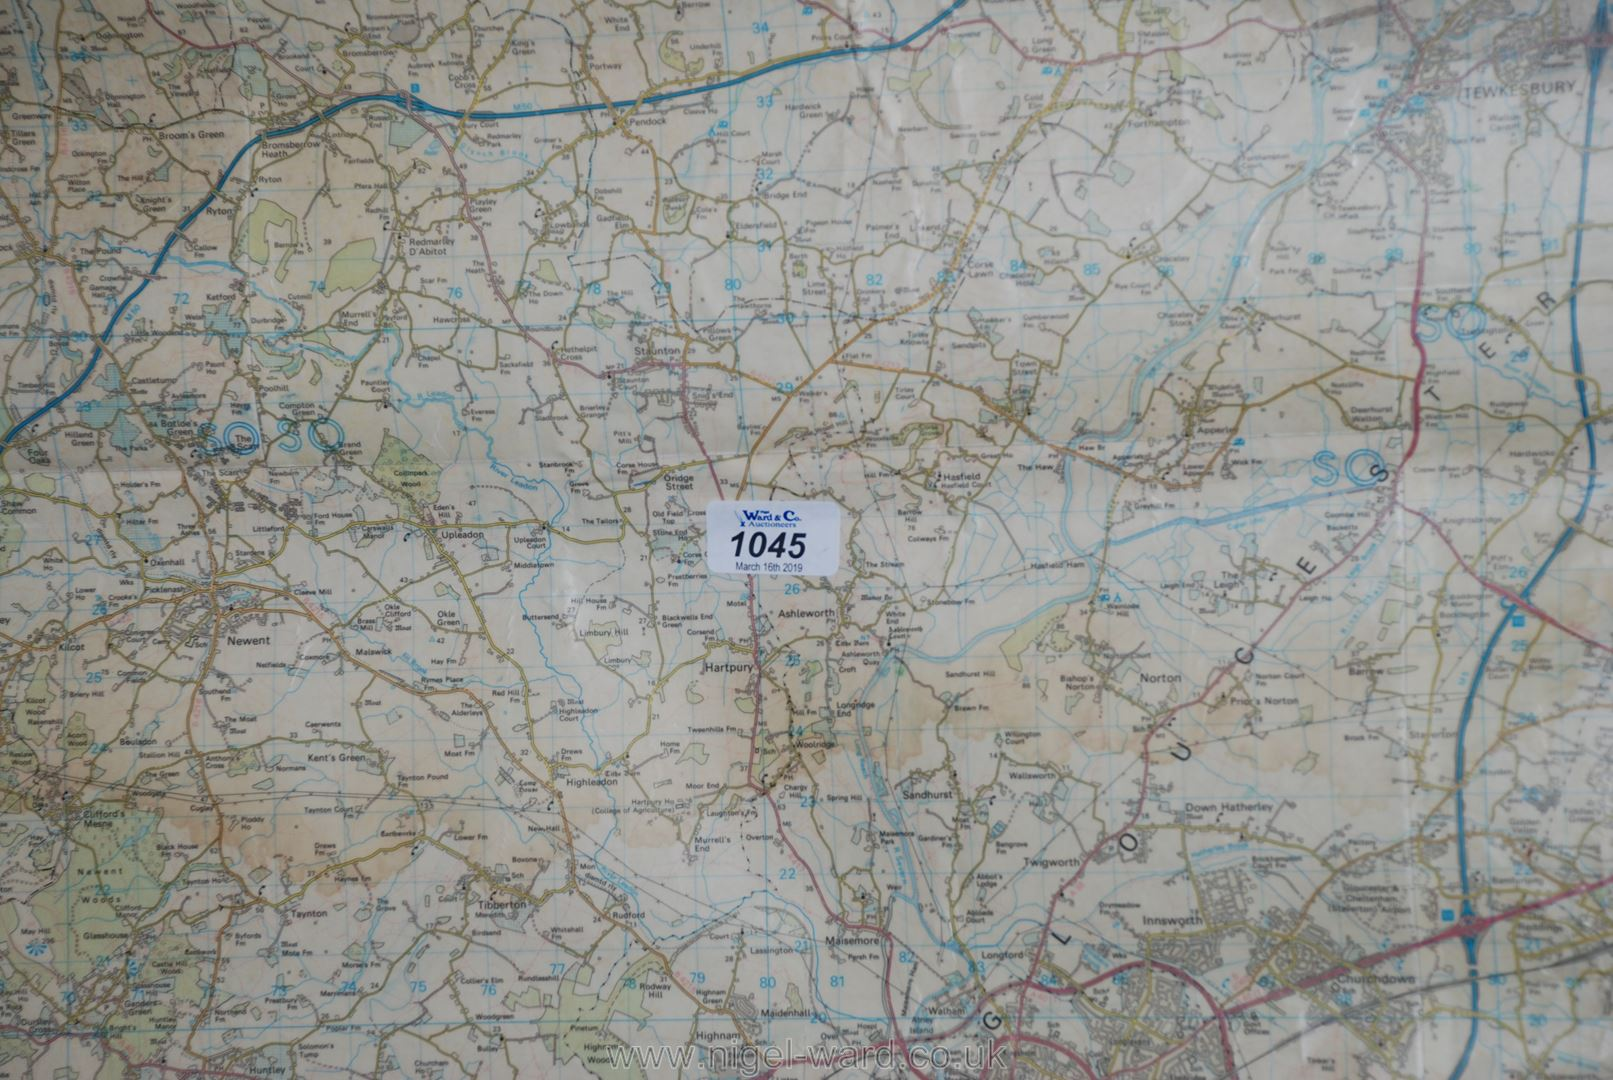 Lot 1045 - A large Ordnance Survey map of Glos/Hereford on linen.